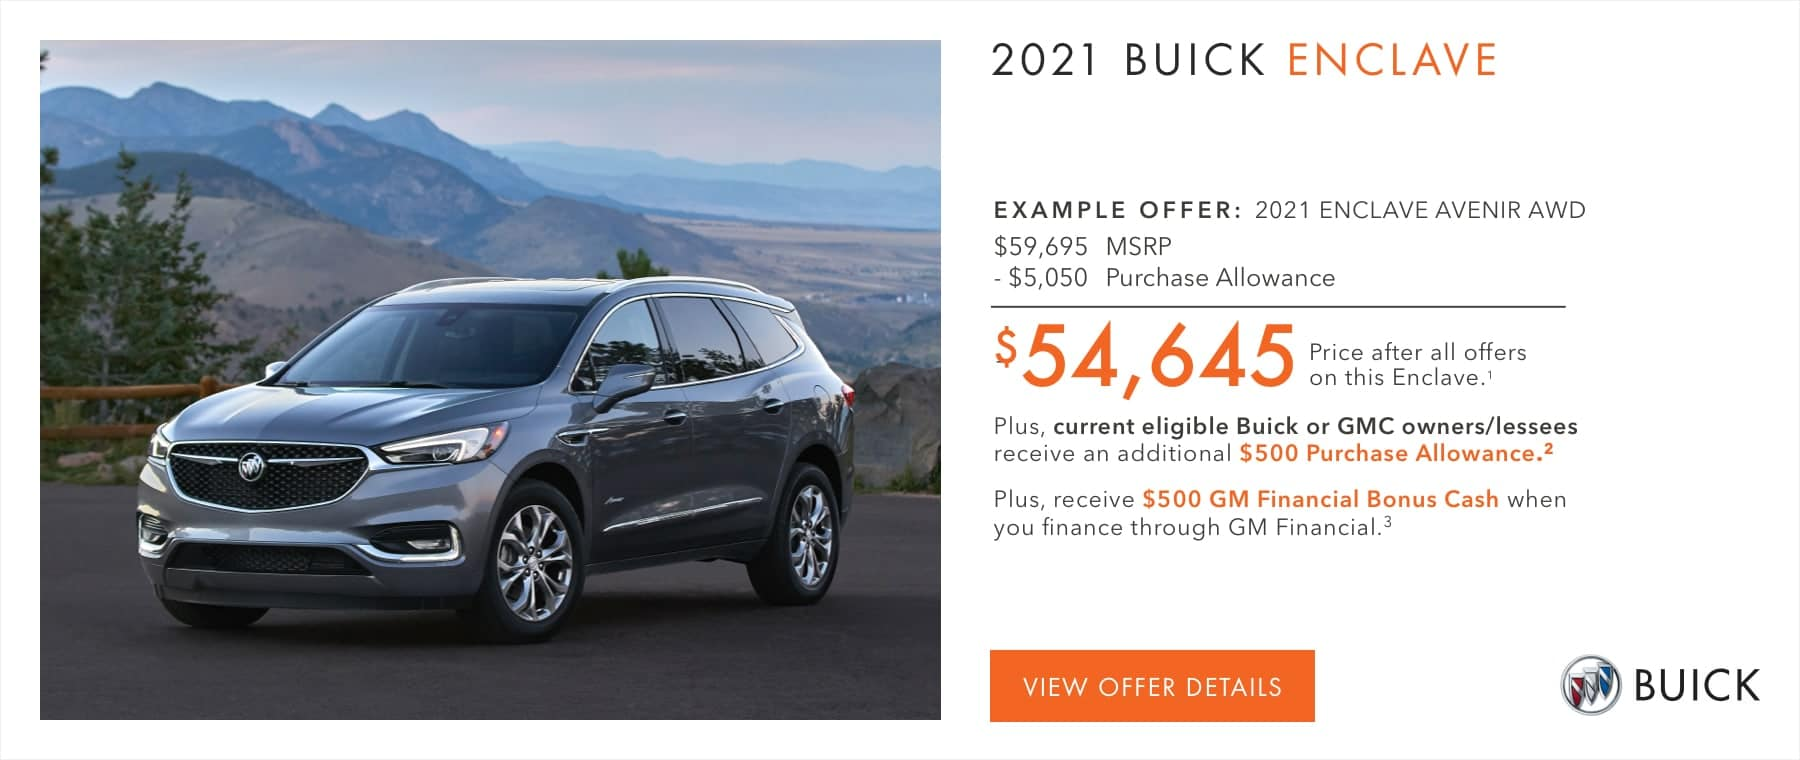 EXAMPLE OFFER: 2021 ENCLAVE AVENIR AWD $59,695 MSRP -$5,050 Purchase Allowance $54,645 Price after all offers on this Enclave.1 Plus, current eligible Buick or GMC owners/lessees receive an additional $500 Purchase Allowance.2 Plus, receive $500 GM Financial Bonus Cash when you finance through GM Financial.3